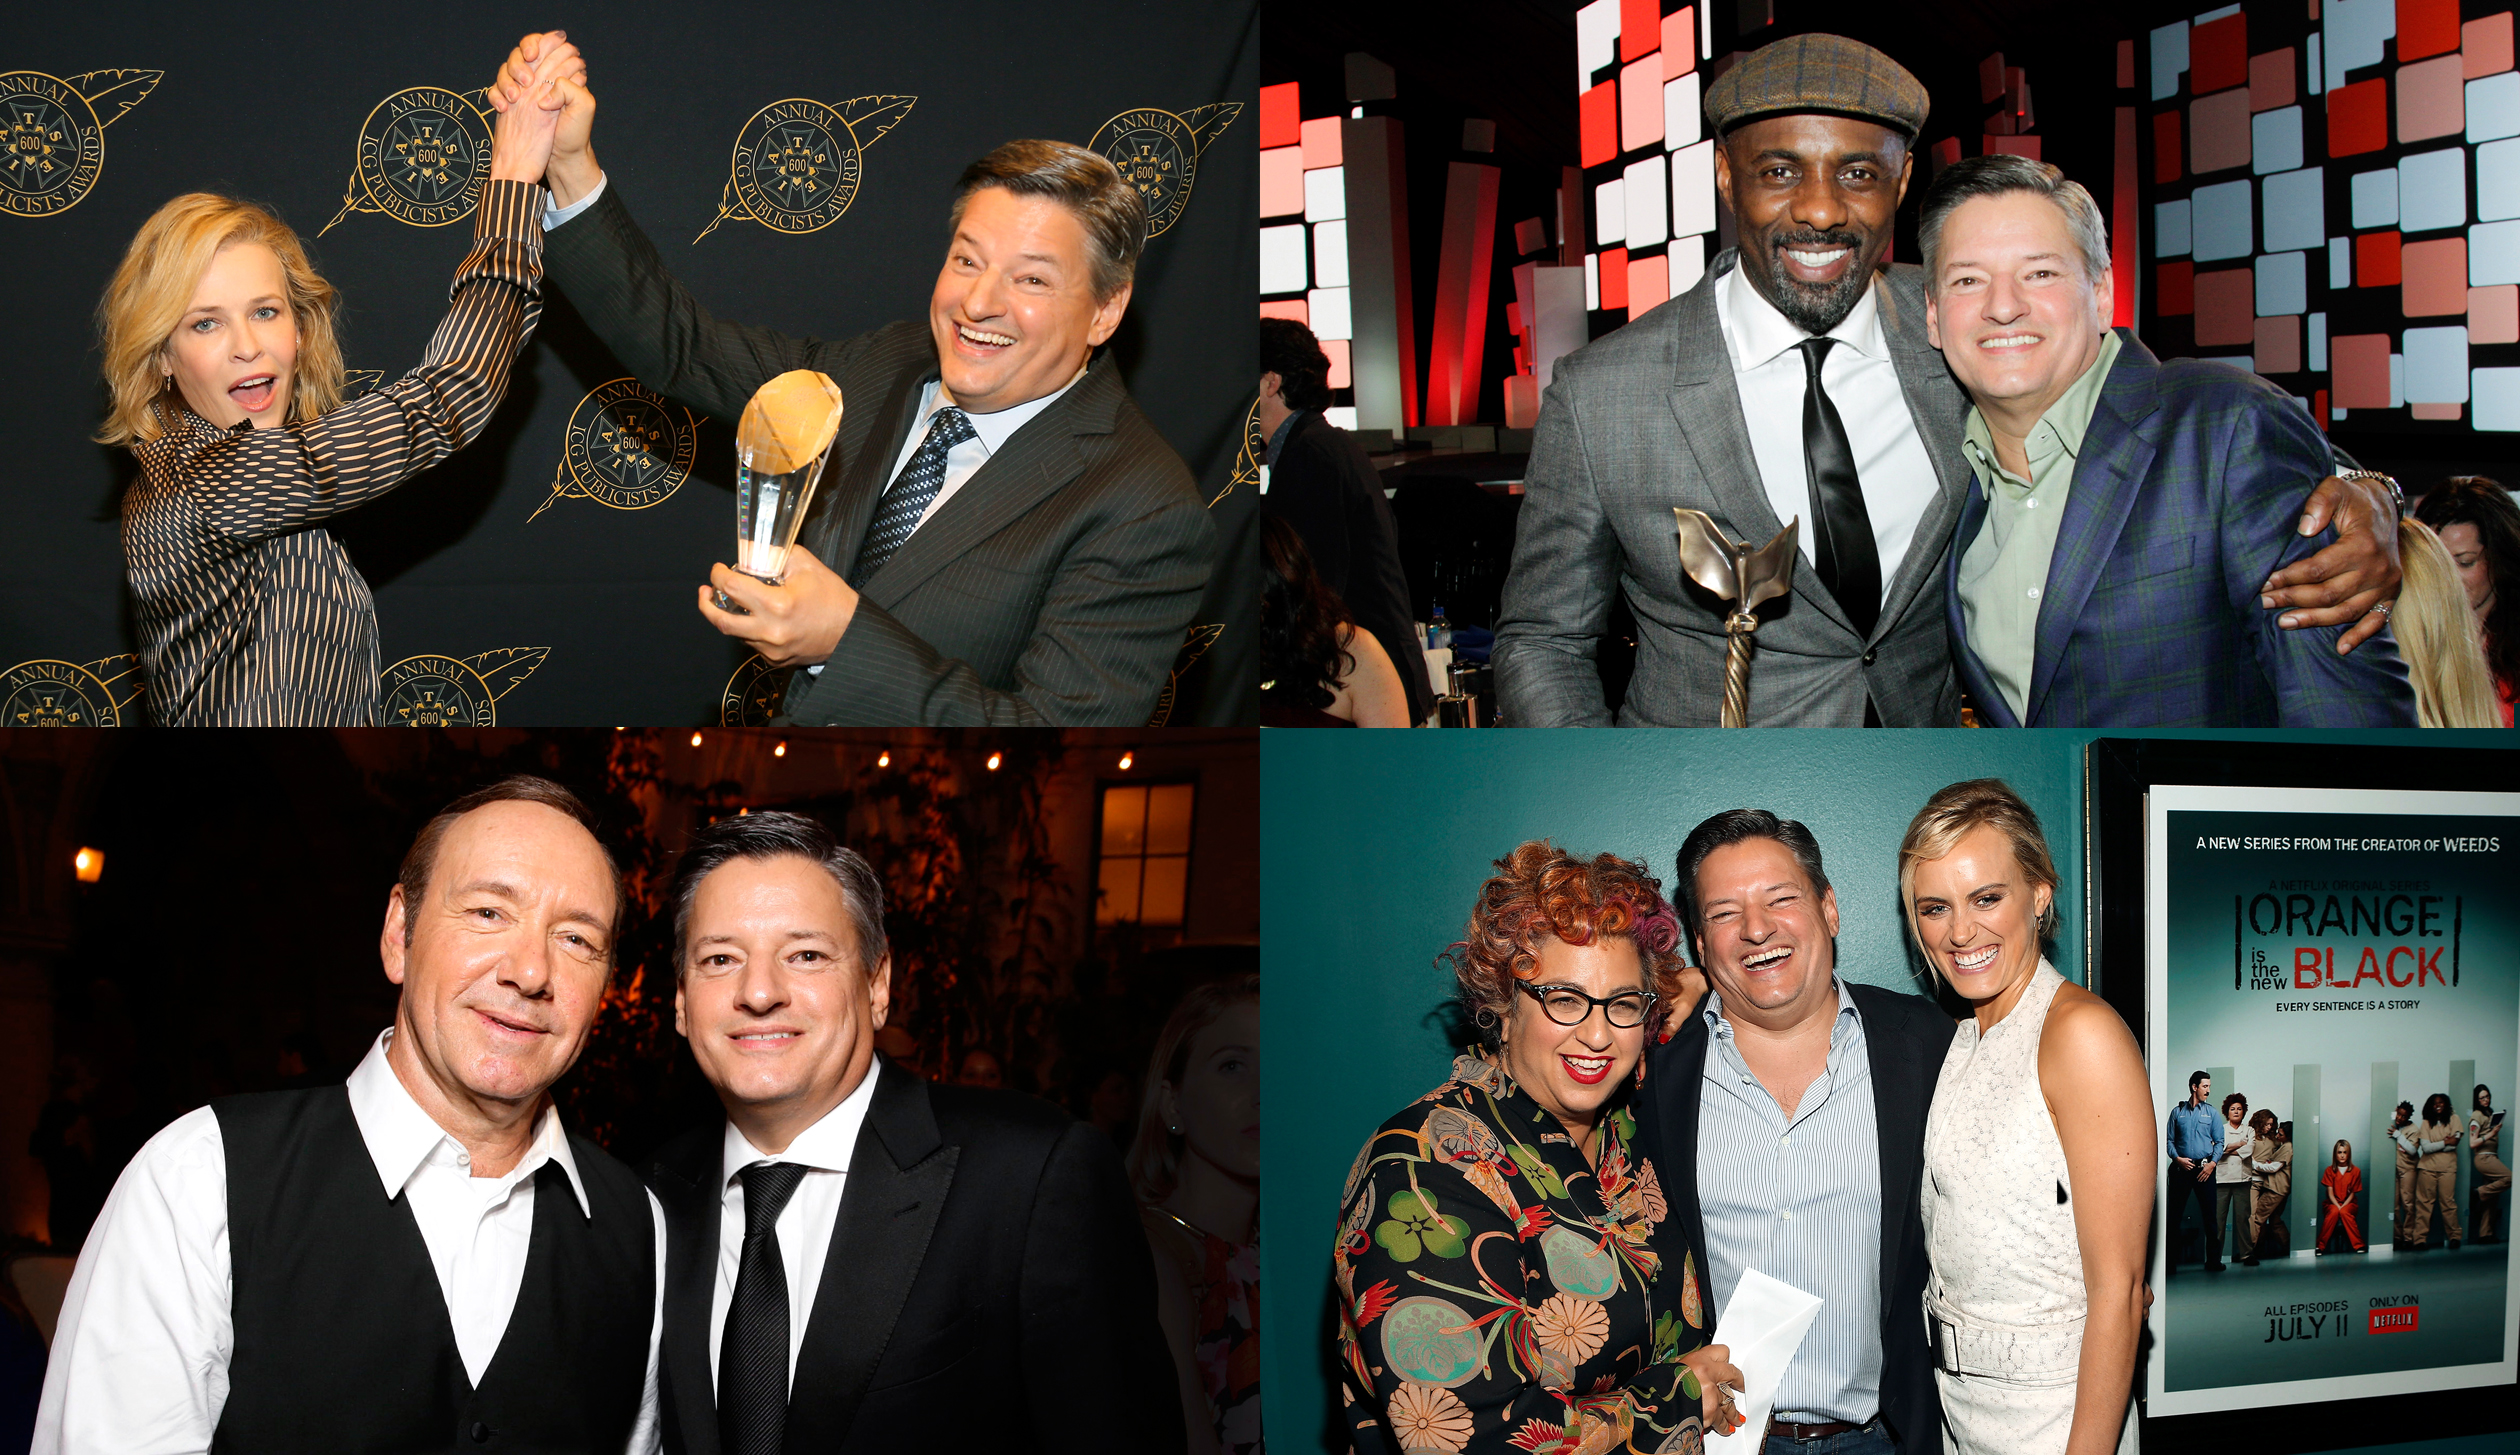 Red-carpet: Sarandos gets face time with (Clockwise from top left) comedian and Netflix talk-show host Chelsea Handle; Idris Elba, star of Netflix's Beasts of No Nation, at the Independent Spirit Awards, at the ICG publicist awards; Jenji Kohan (left) and Taylor Schilling, creator and star, respectively, of Netflix's Orange Is The New Black; House of Cards star Kevin Spacey, at a Netflix Emmy's party.